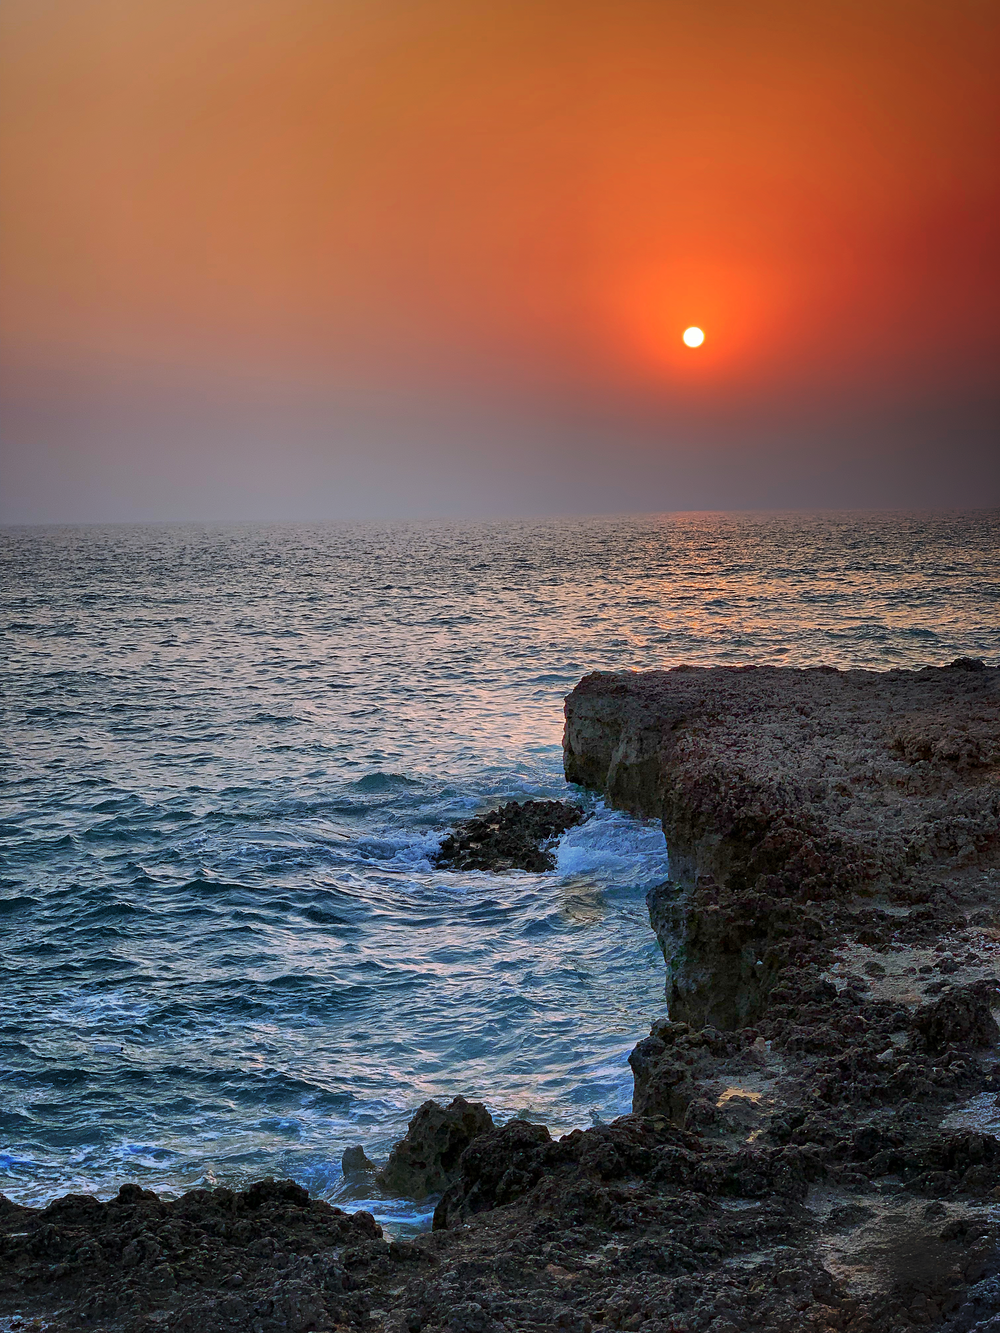 photograph of seashore during sunset